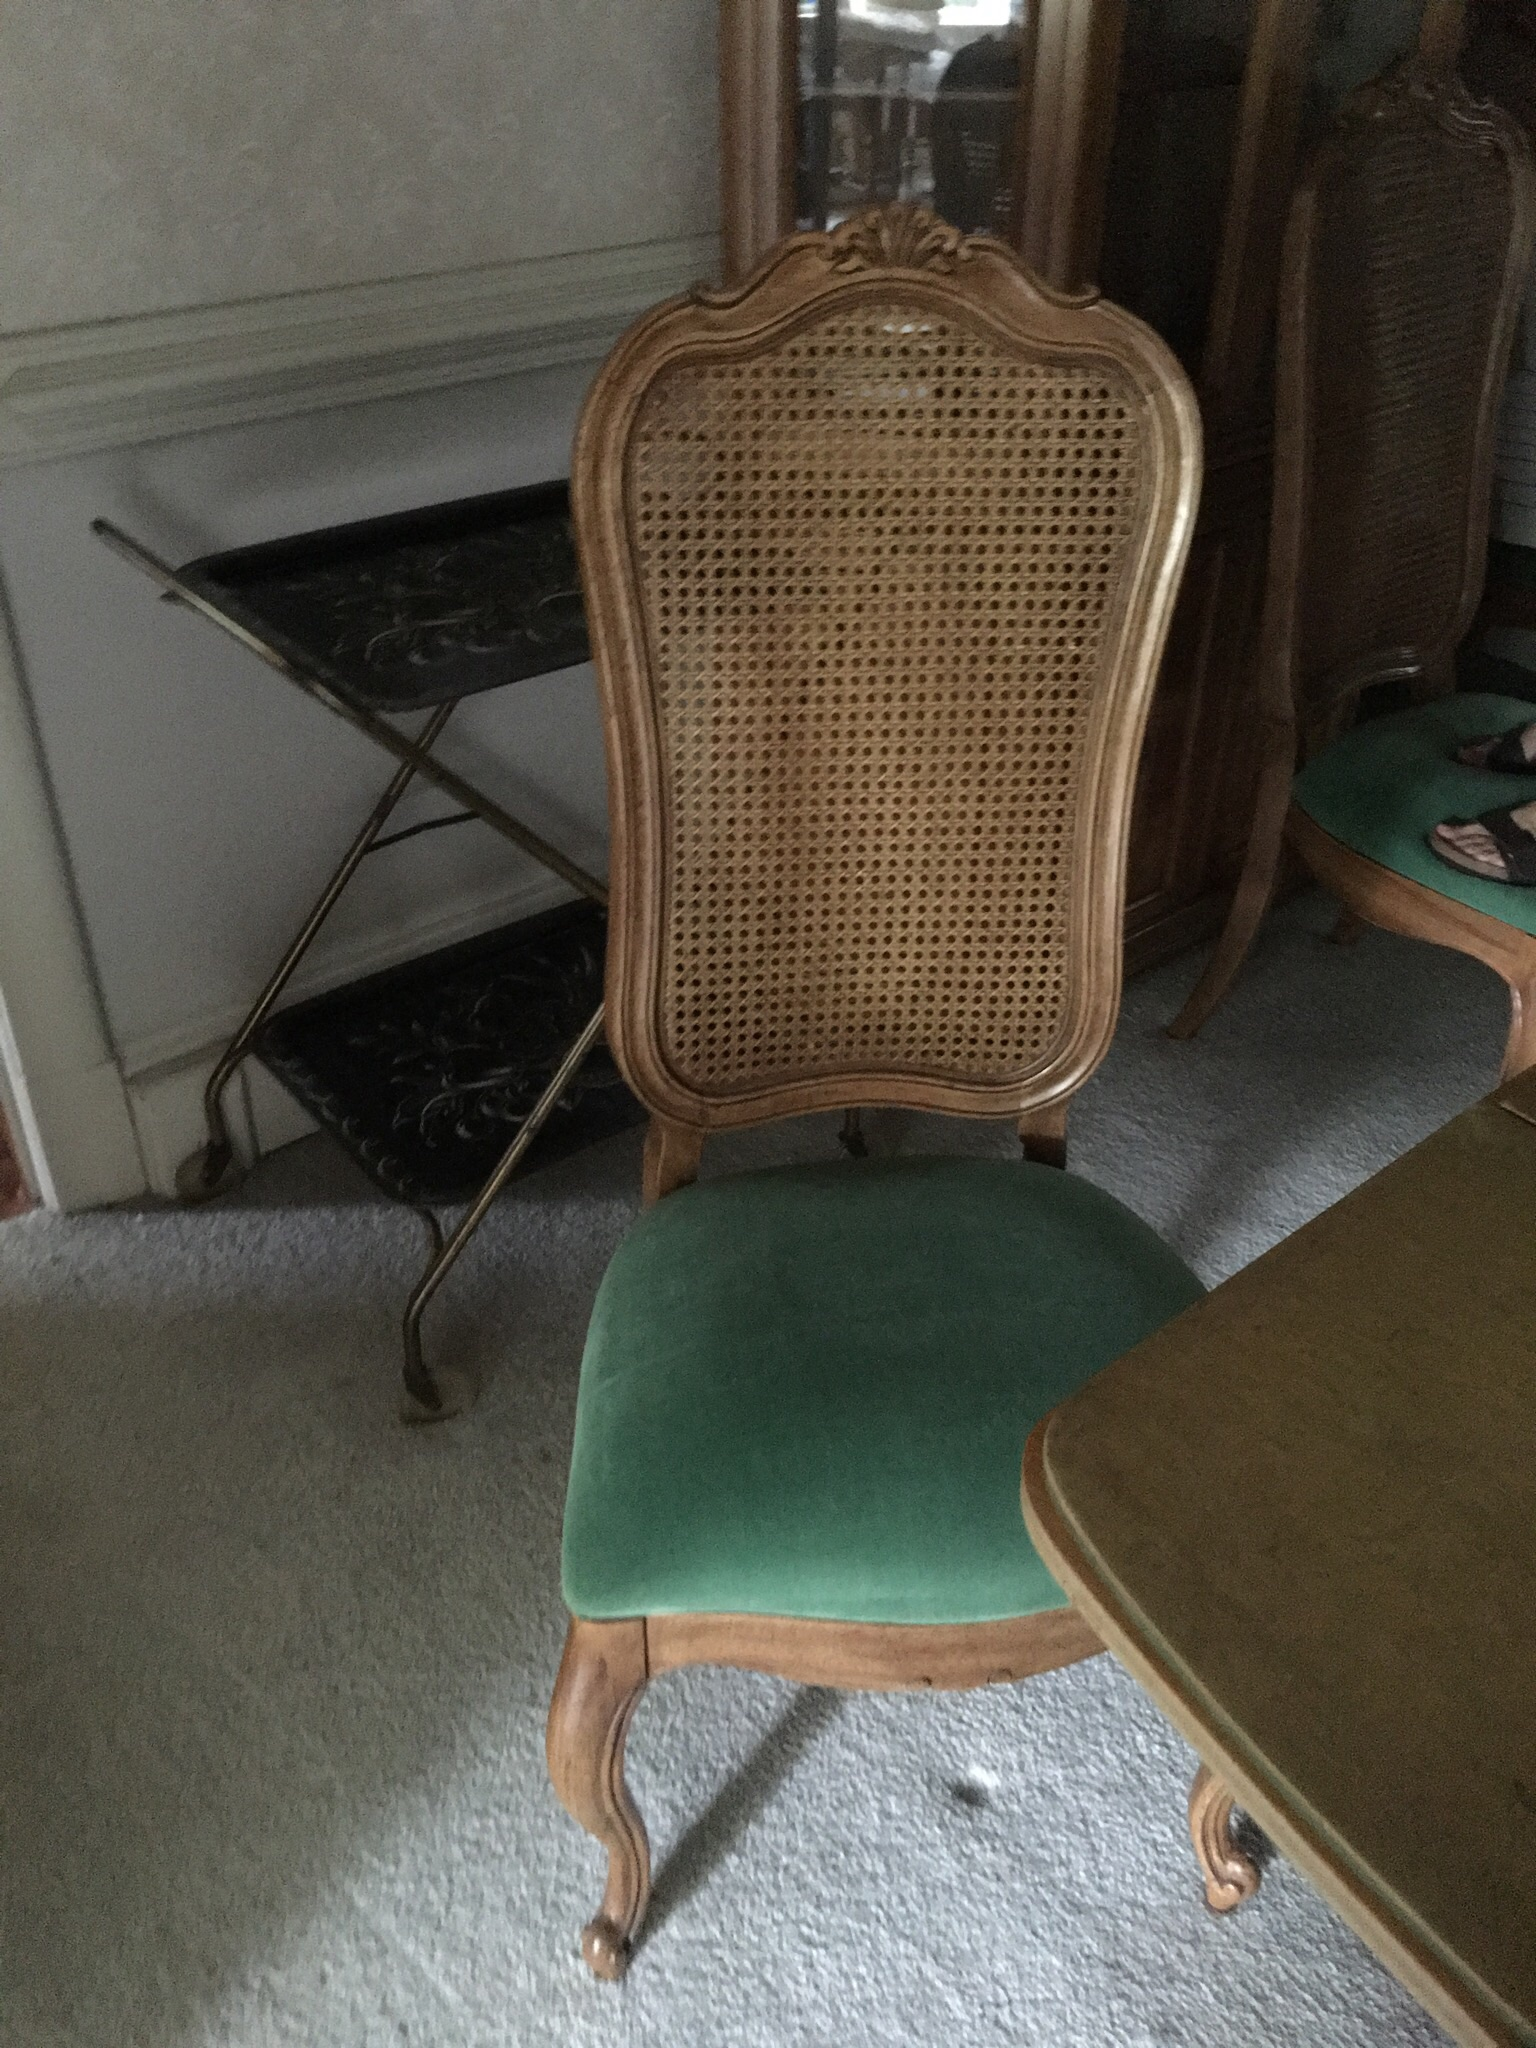 6 Dining Toom chairs plus dining room table